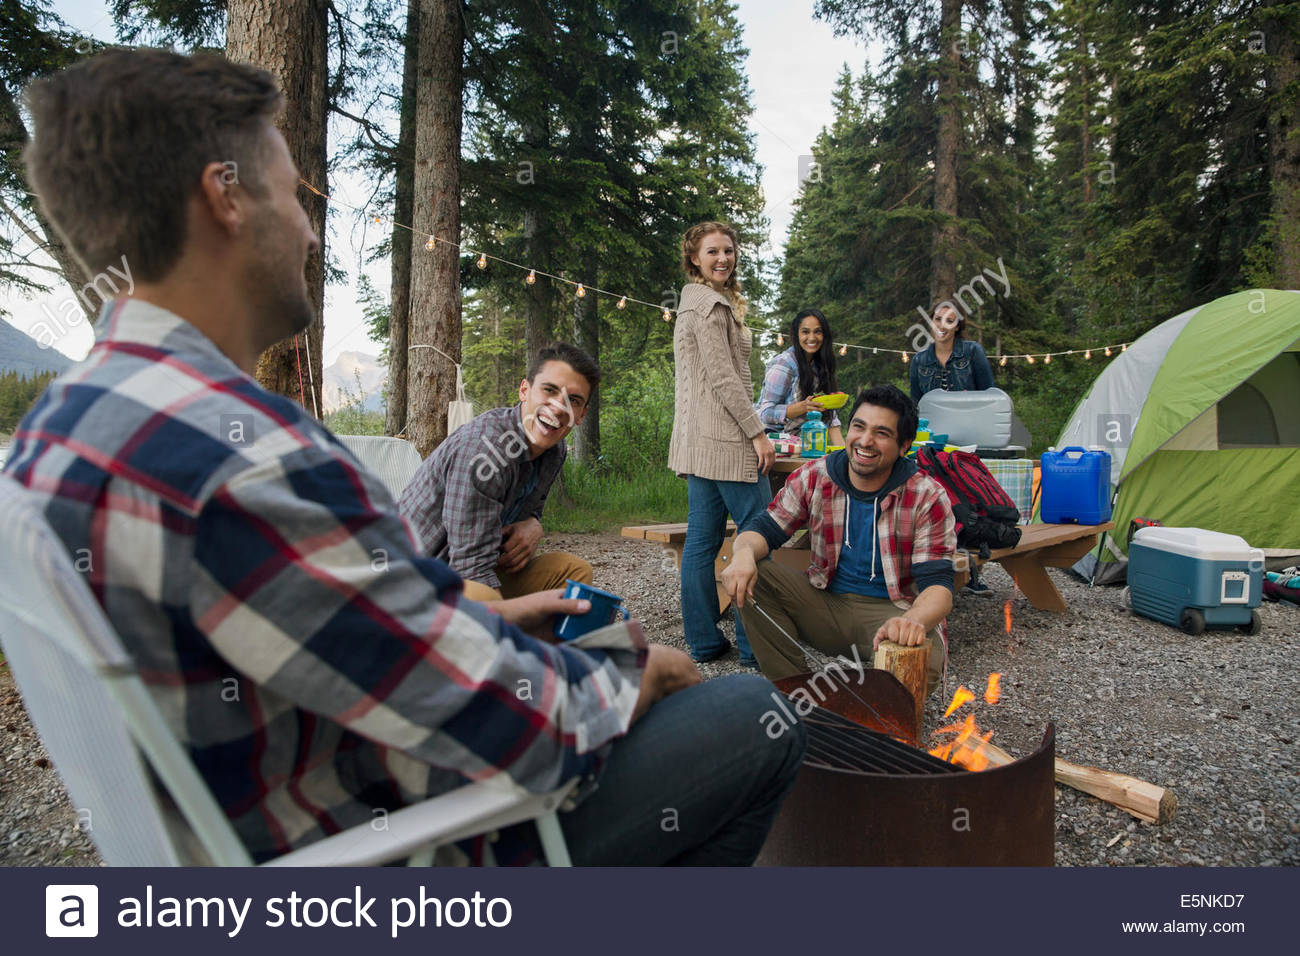 Friends hanging out around campfire at campsite Stock Photo